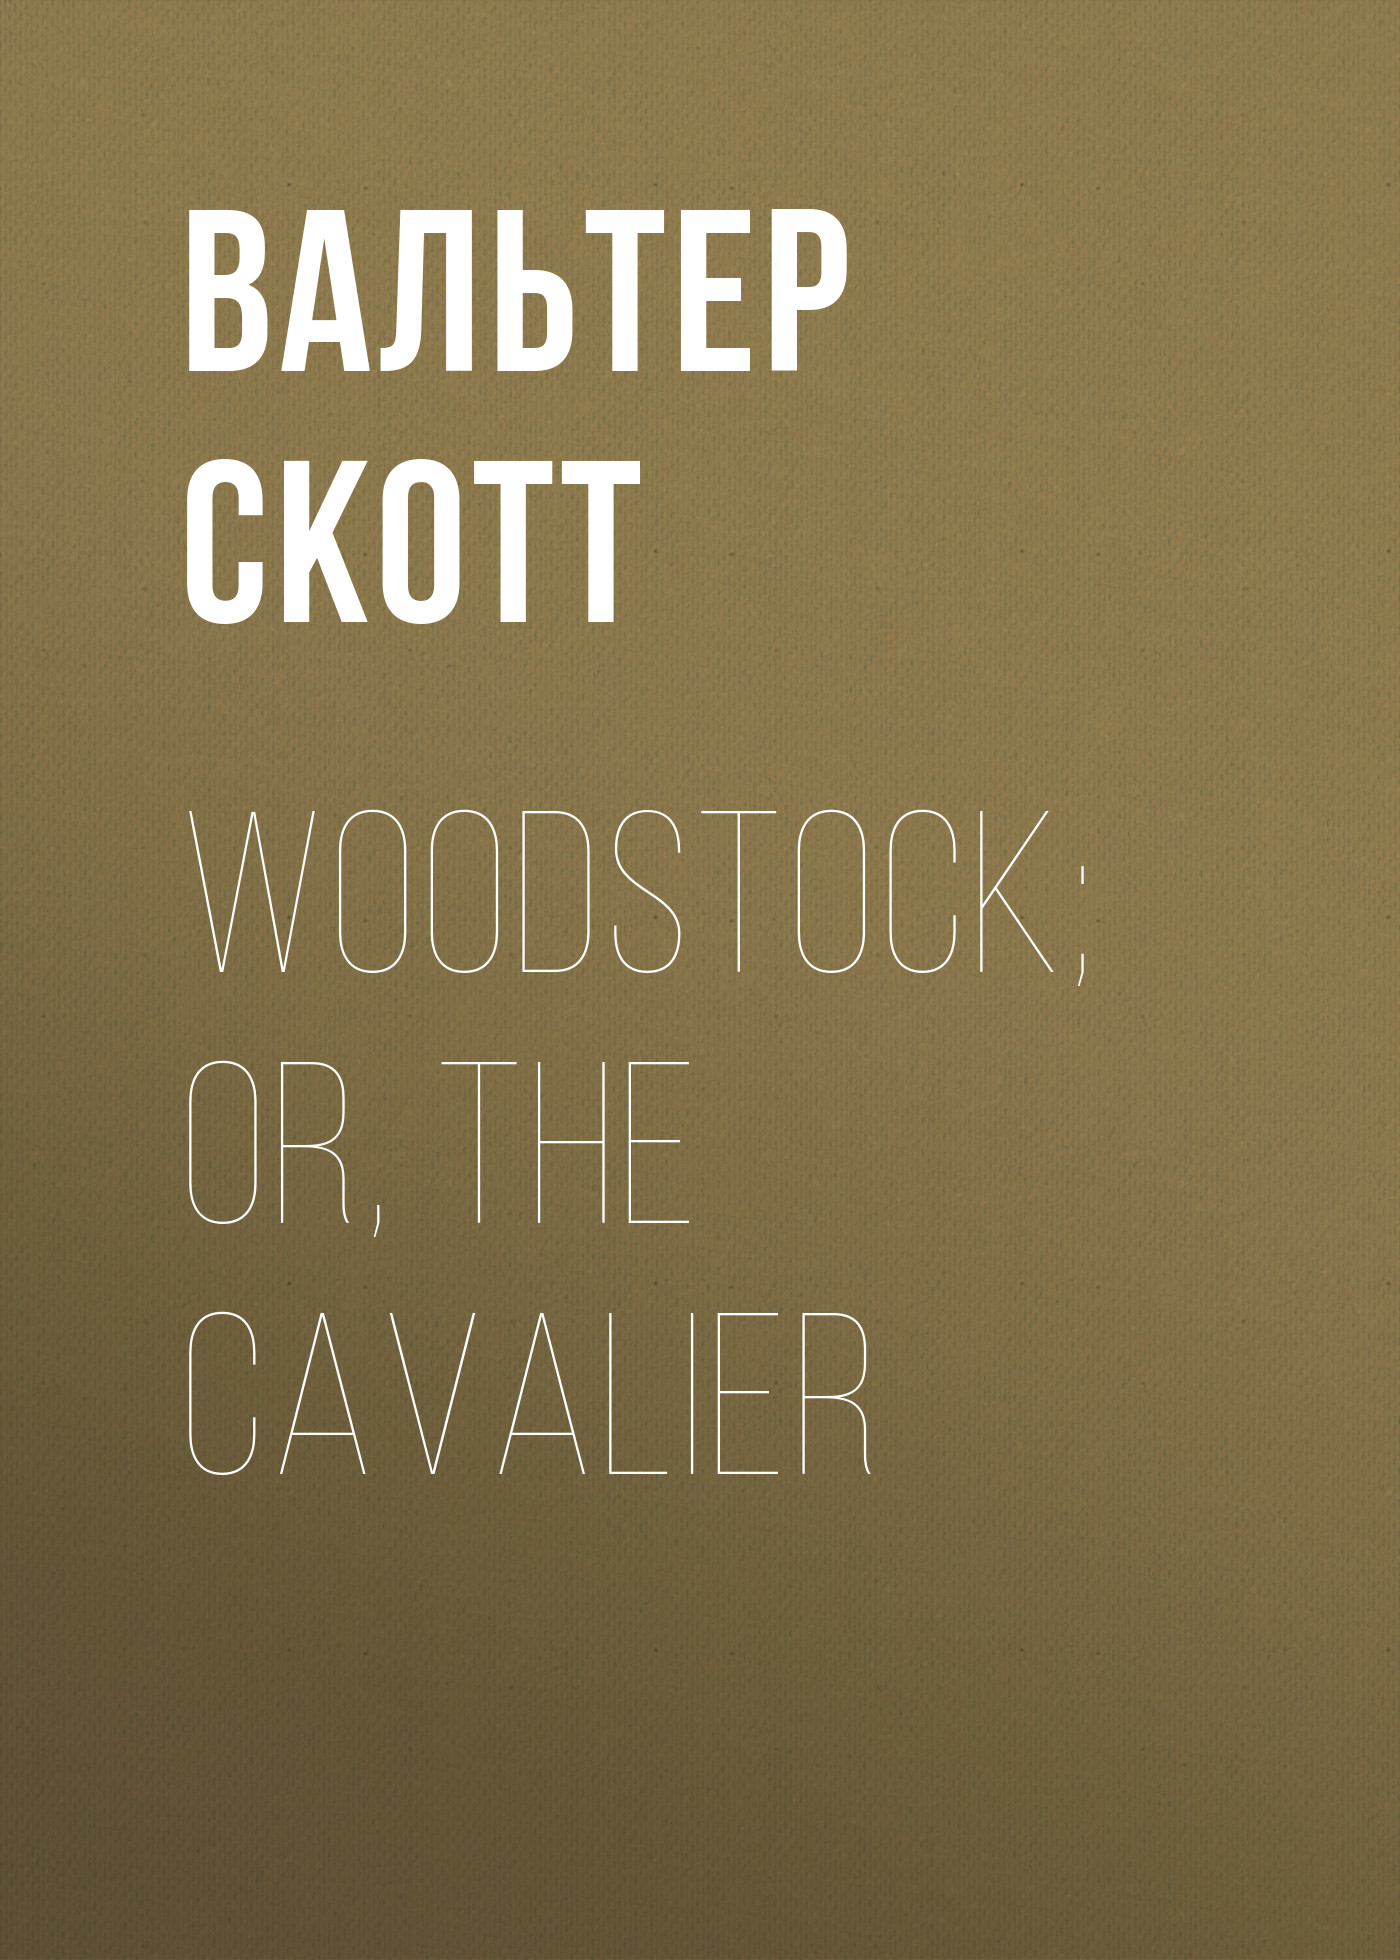 Вальтер Скотт Woodstock; or, the Cavalier цена